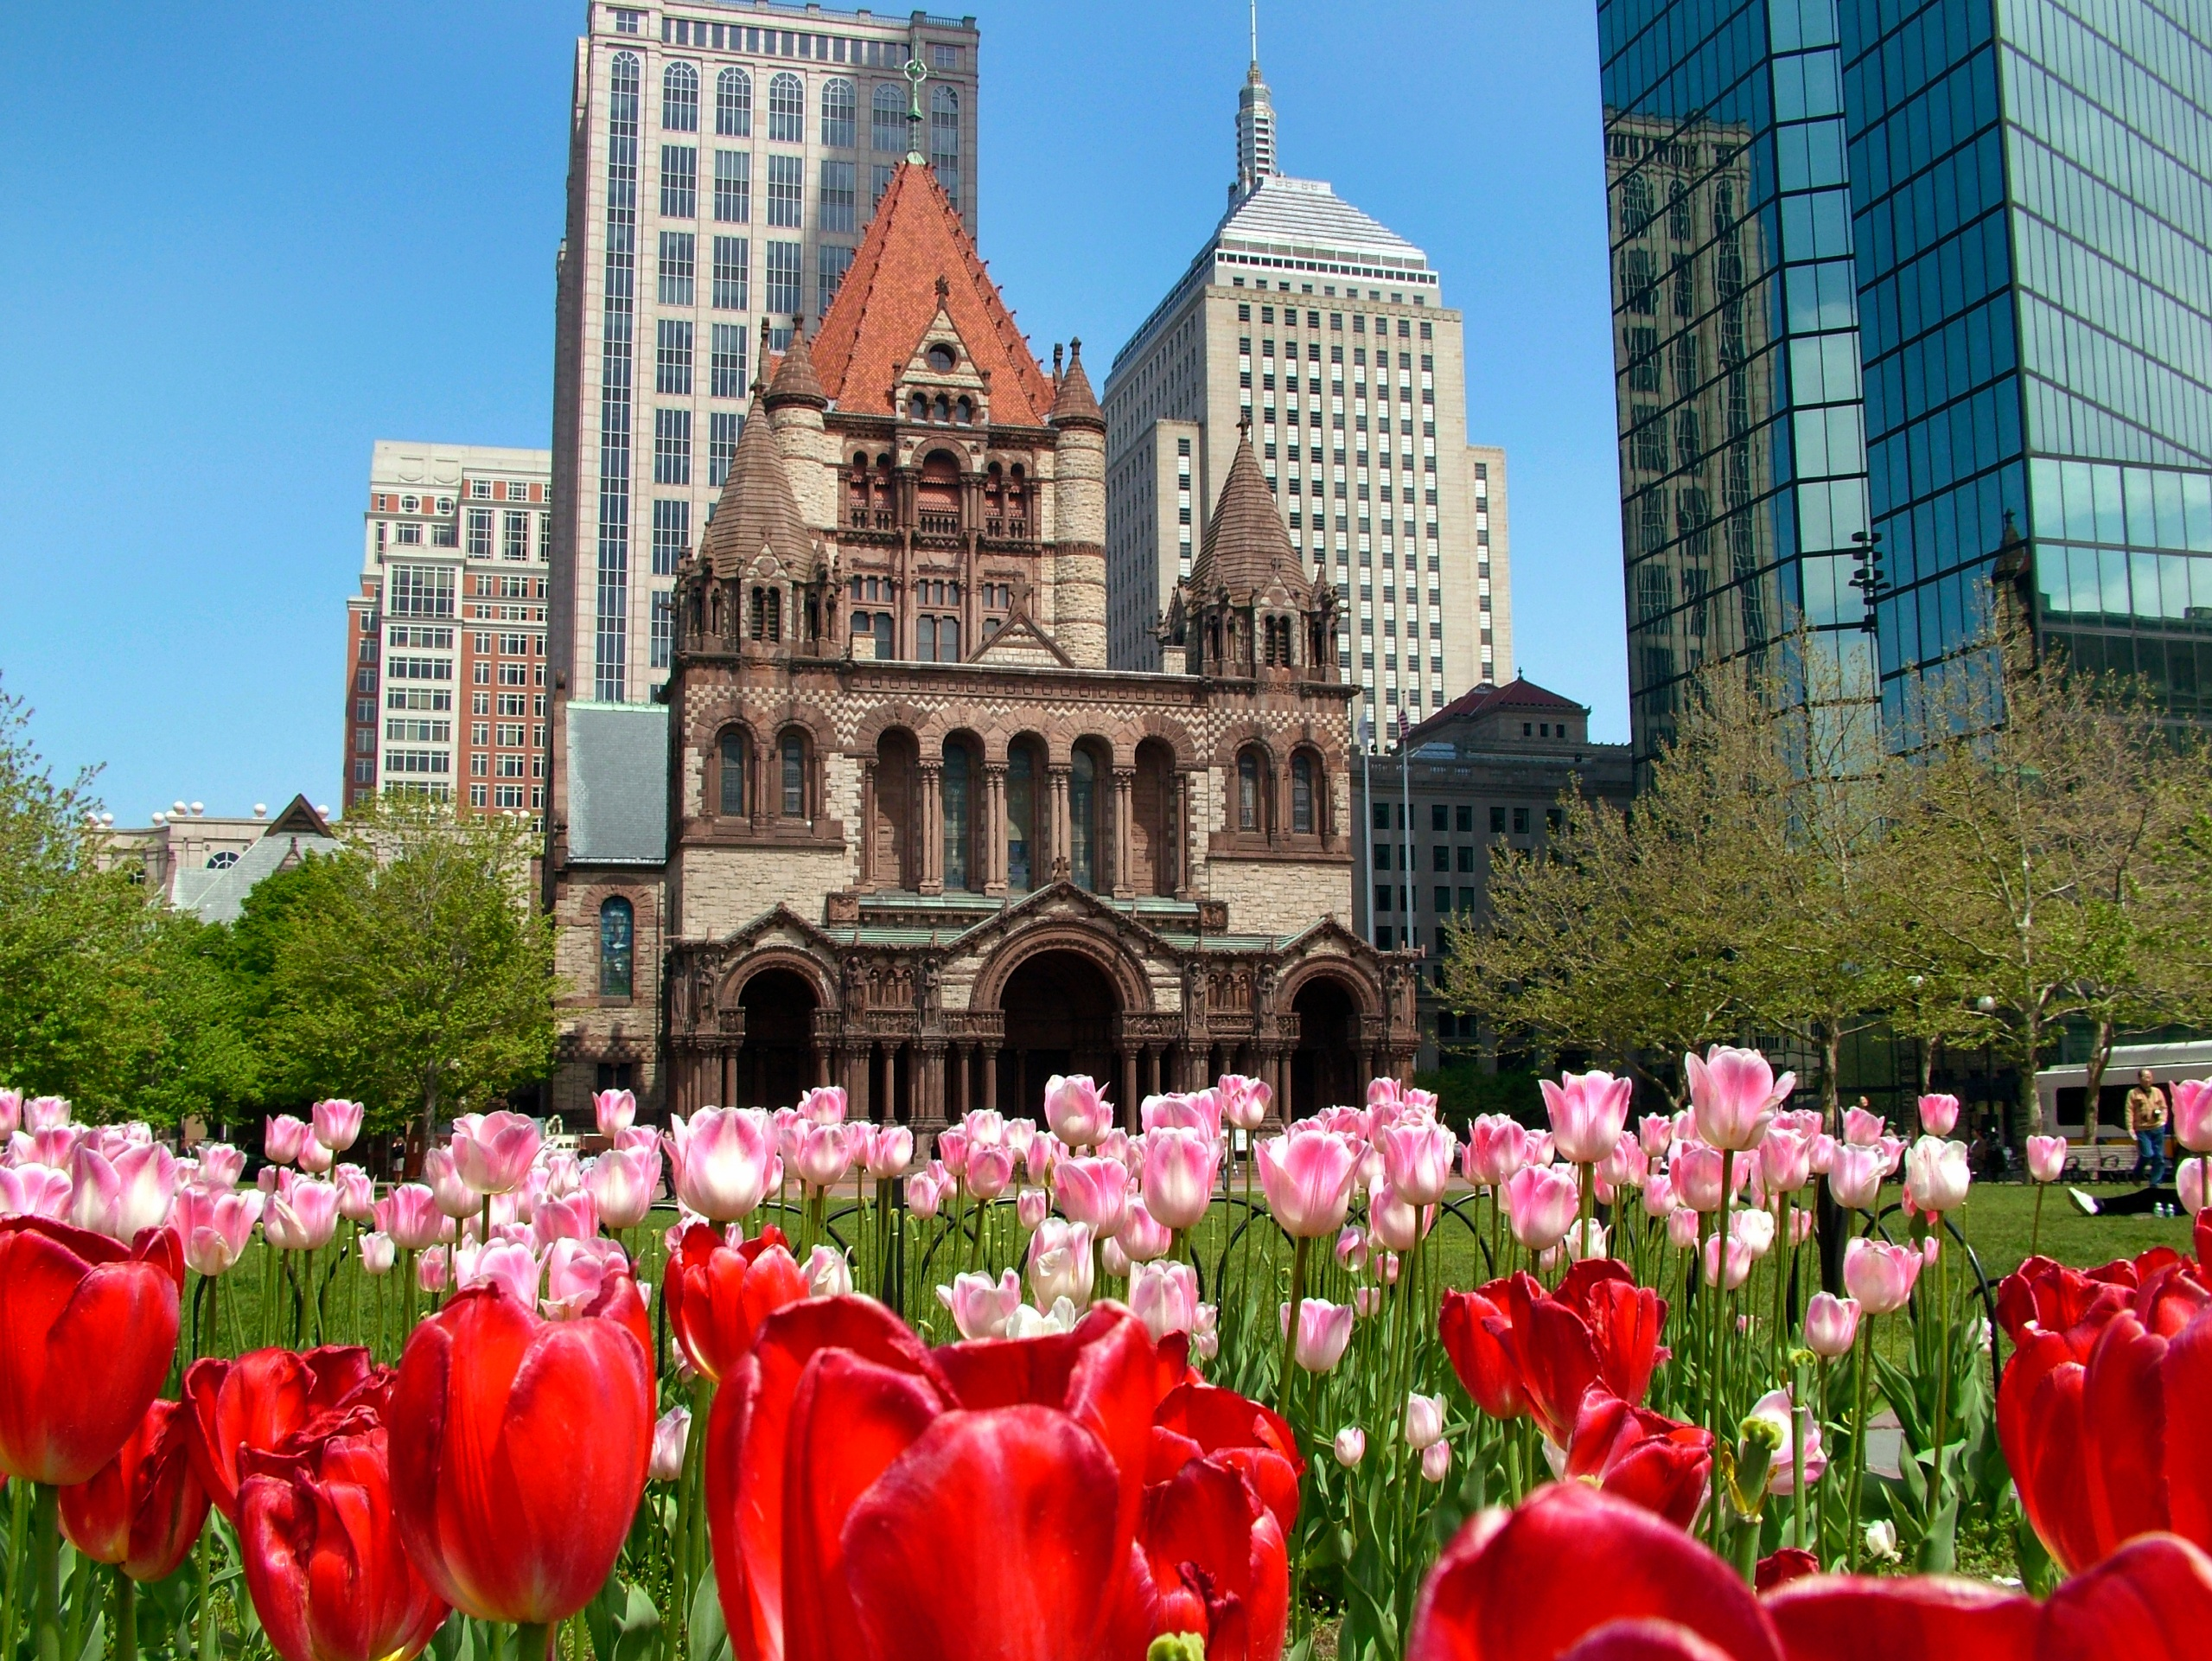 Trinity-Church,-Copley-Square,-Boston-USA-000052280956_Large